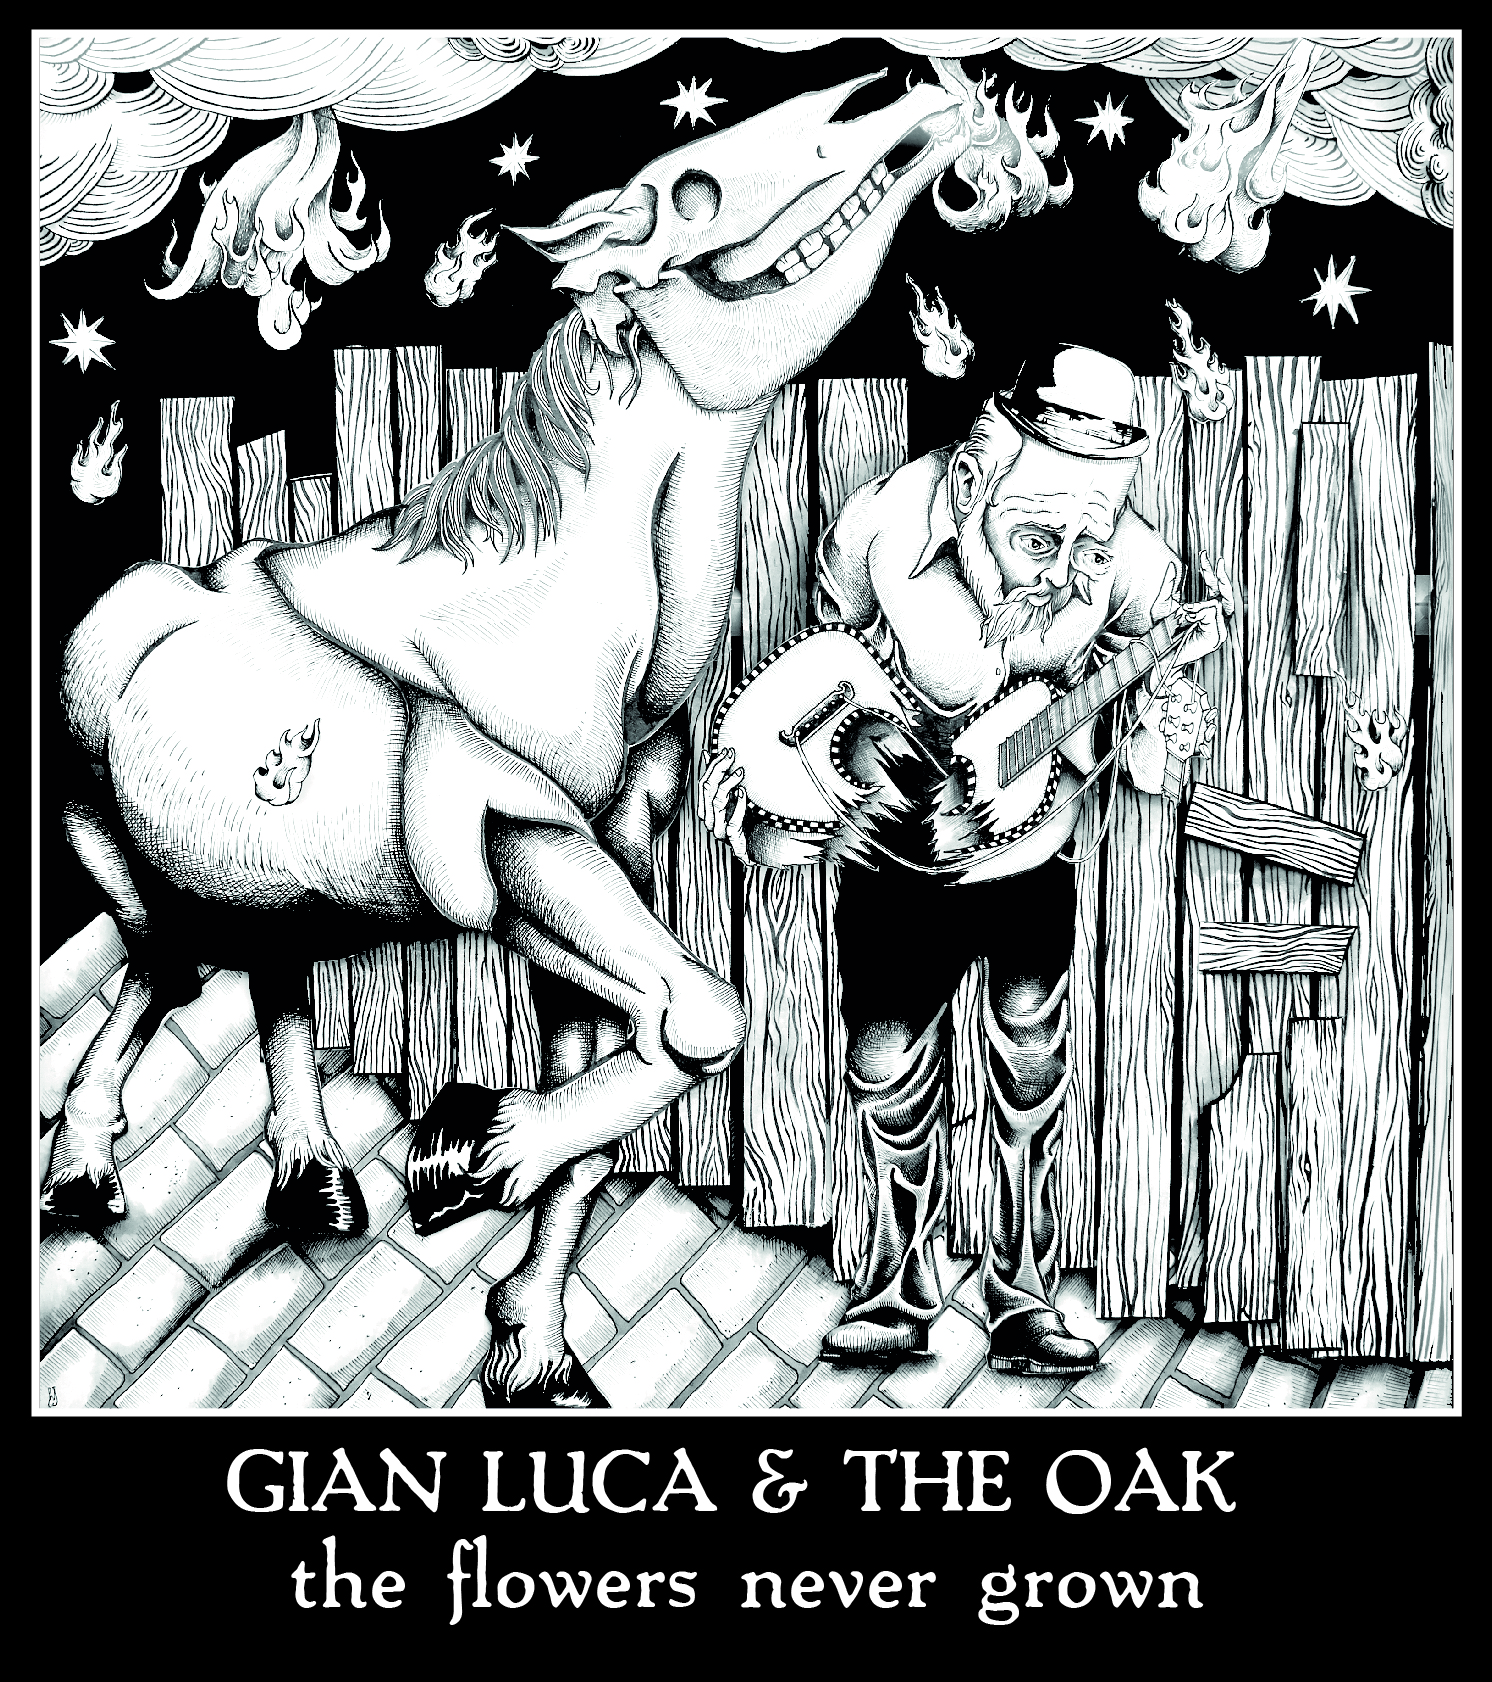 Gian Luca & The Oak - The Flowers Never Grown cover1